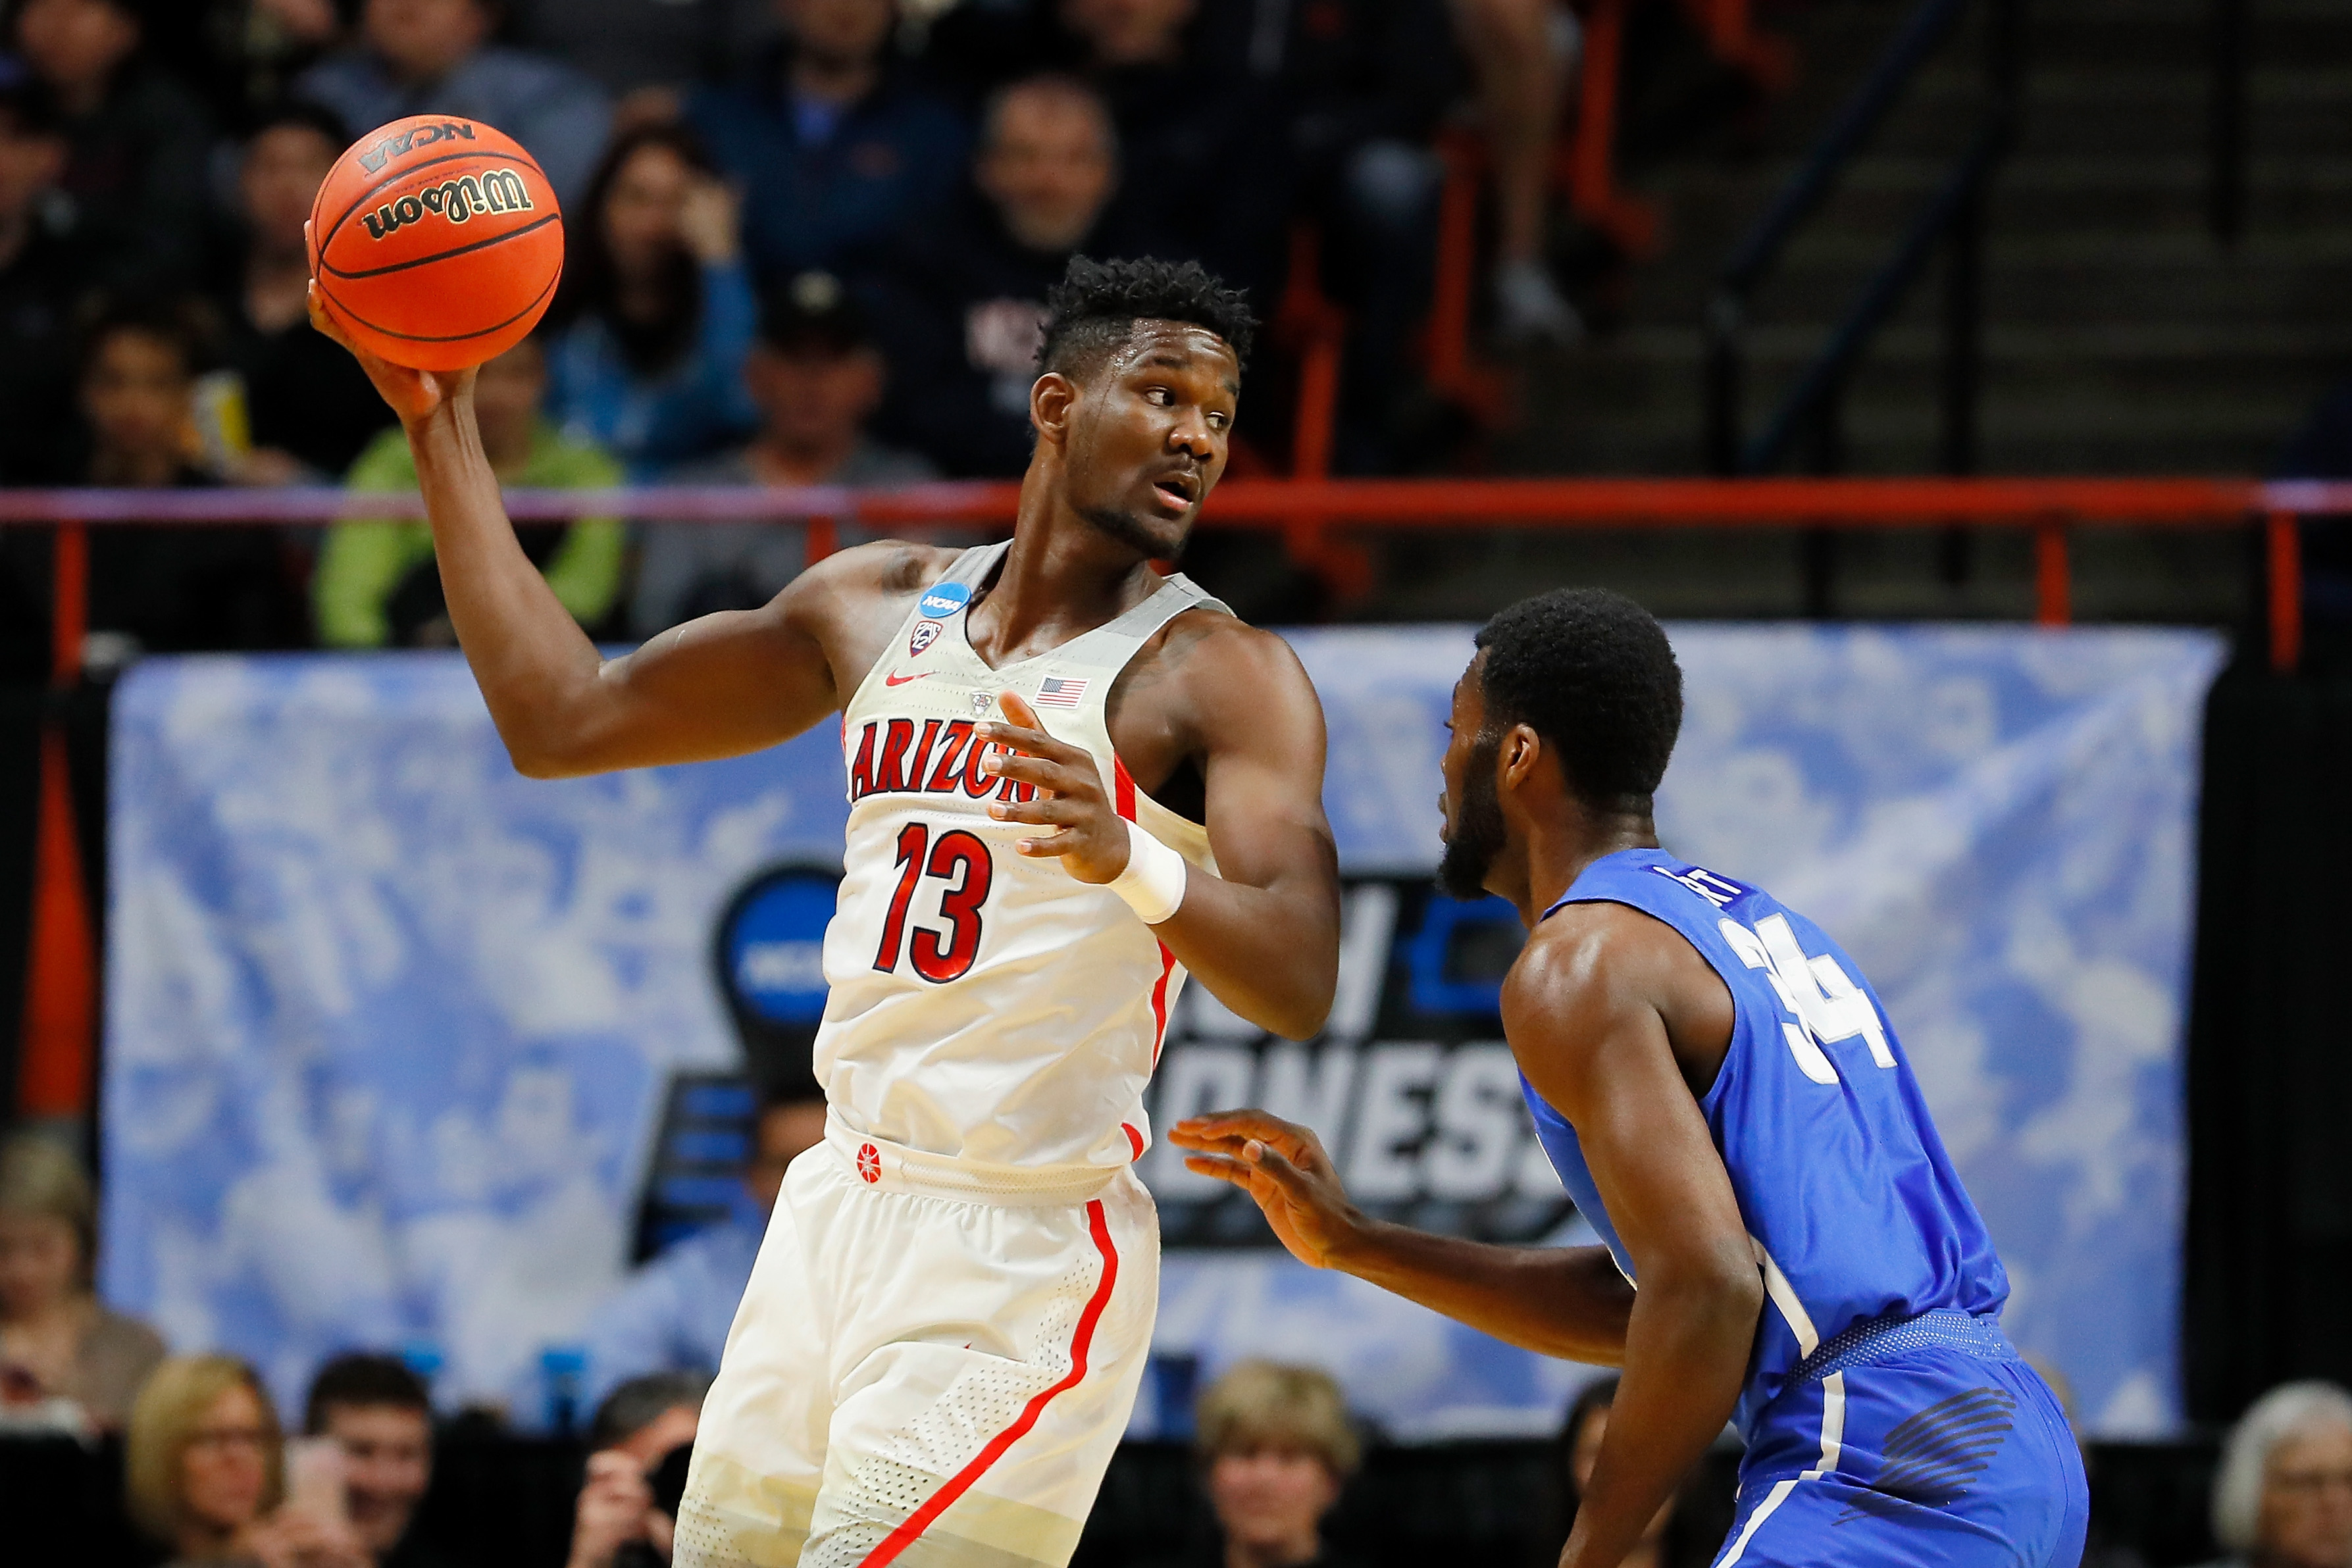 NBA Draft 2018: Deandre Ayton would change the course of the